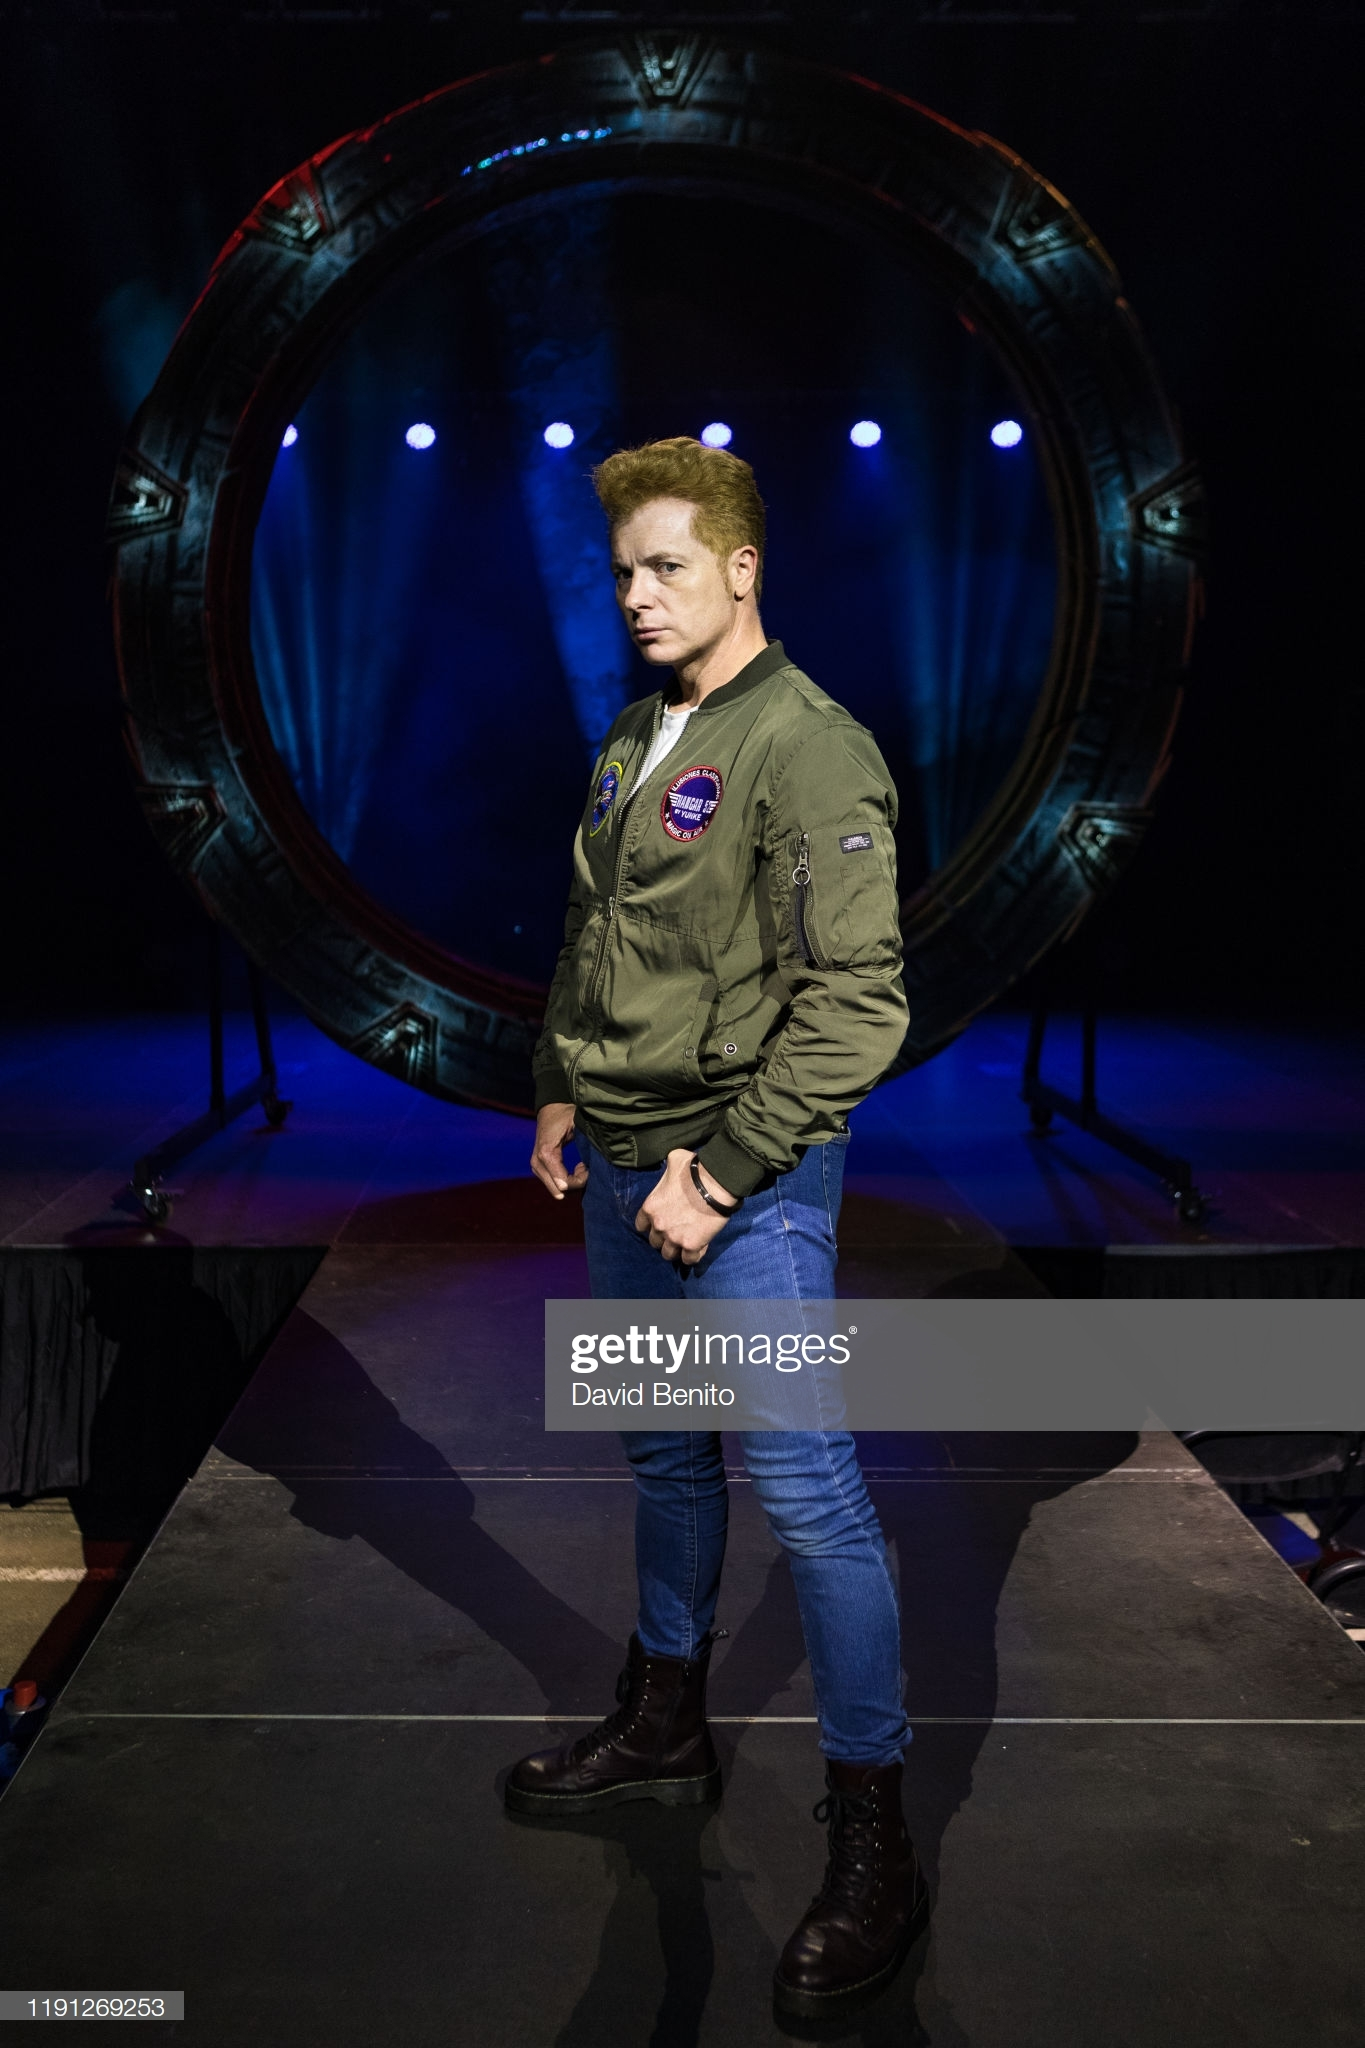 gettyimages-1191269253-2048x2048